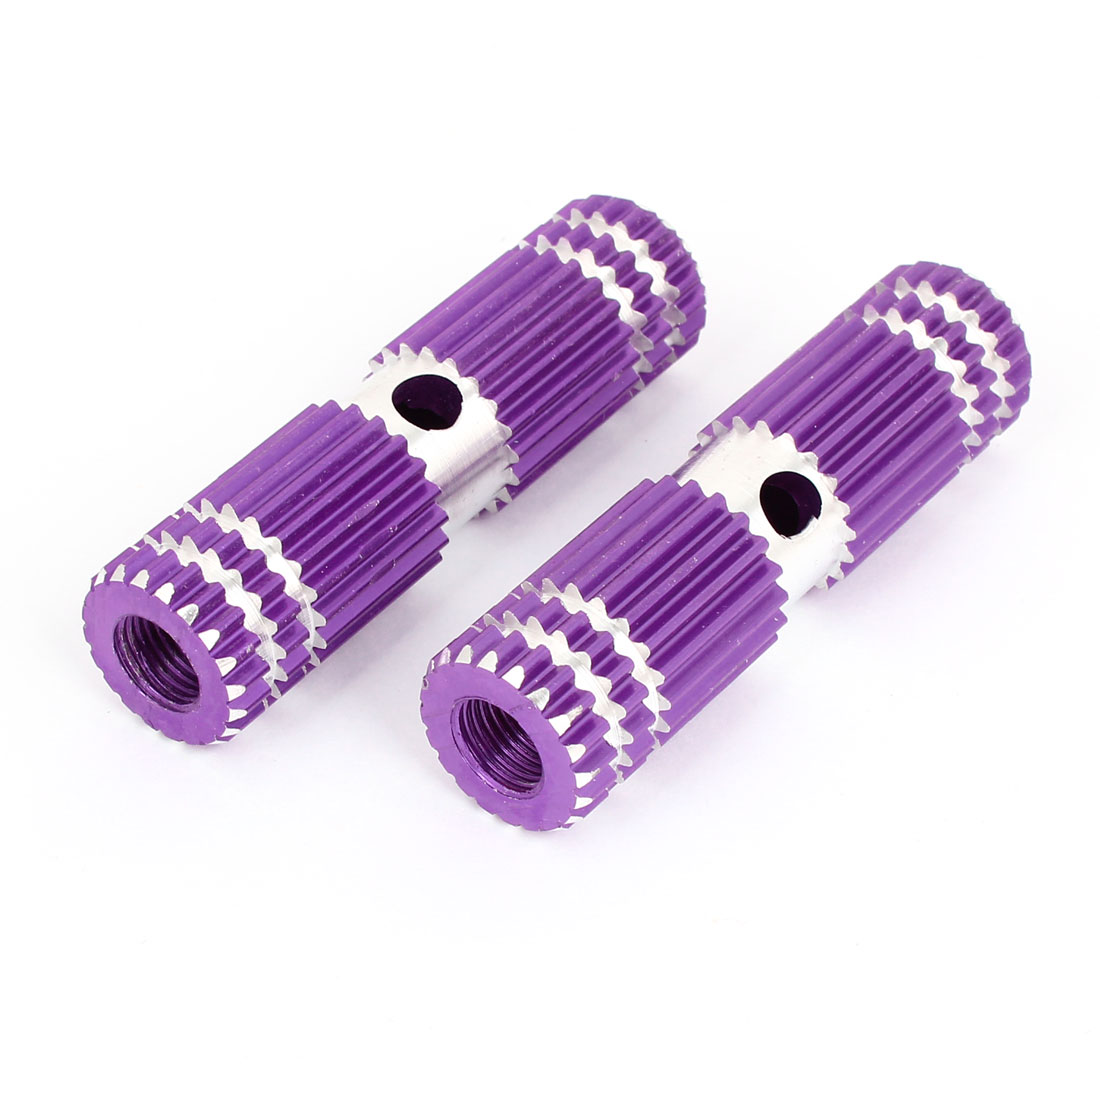 Silver Tone Purple Metal 9mm Axle Hole Dia MTB Bicycle Foot Pegs 2 Pcs